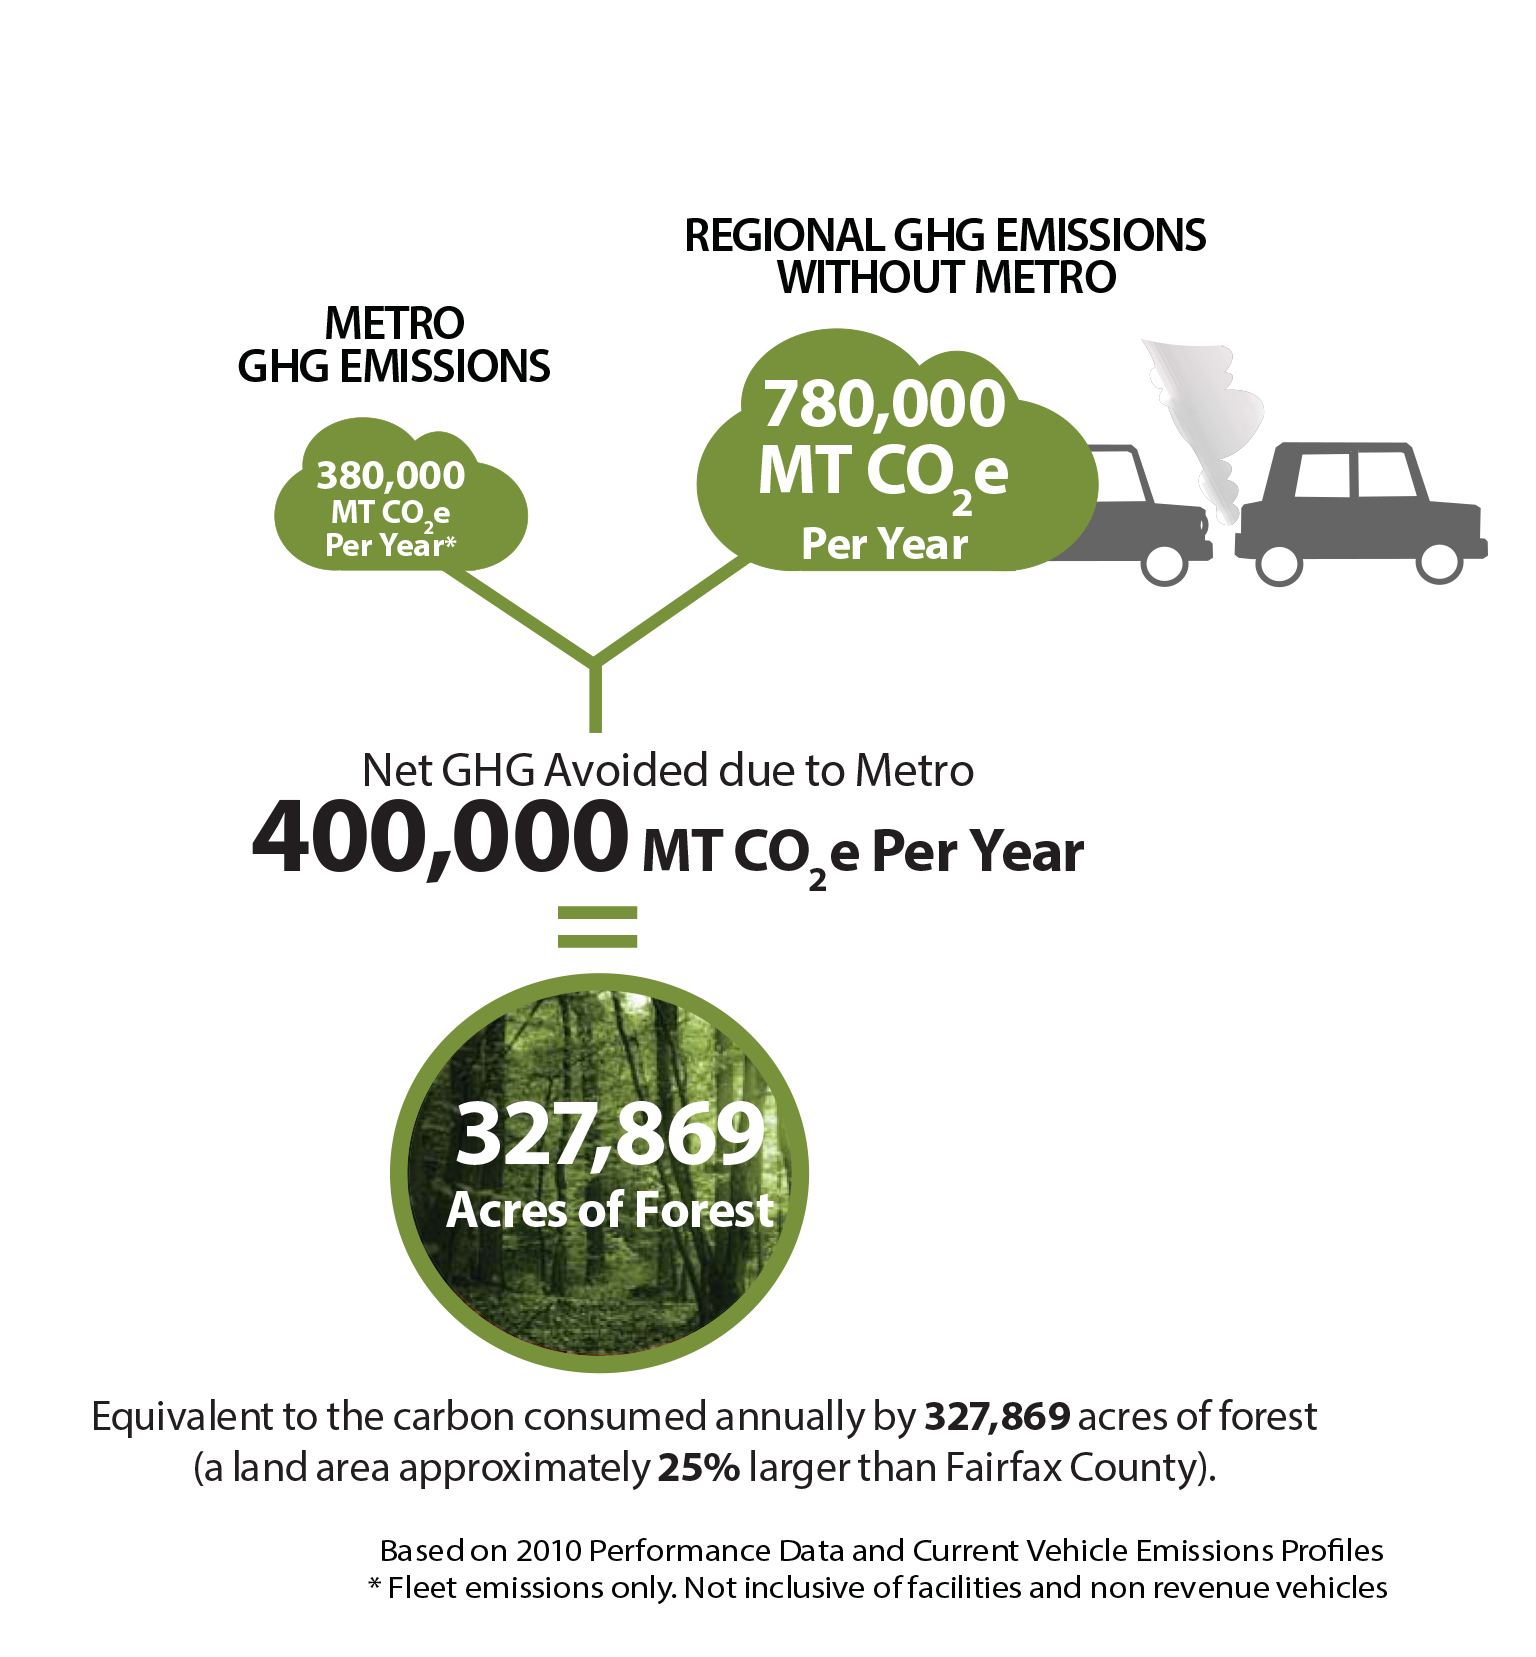 GHG Benefits of Metro